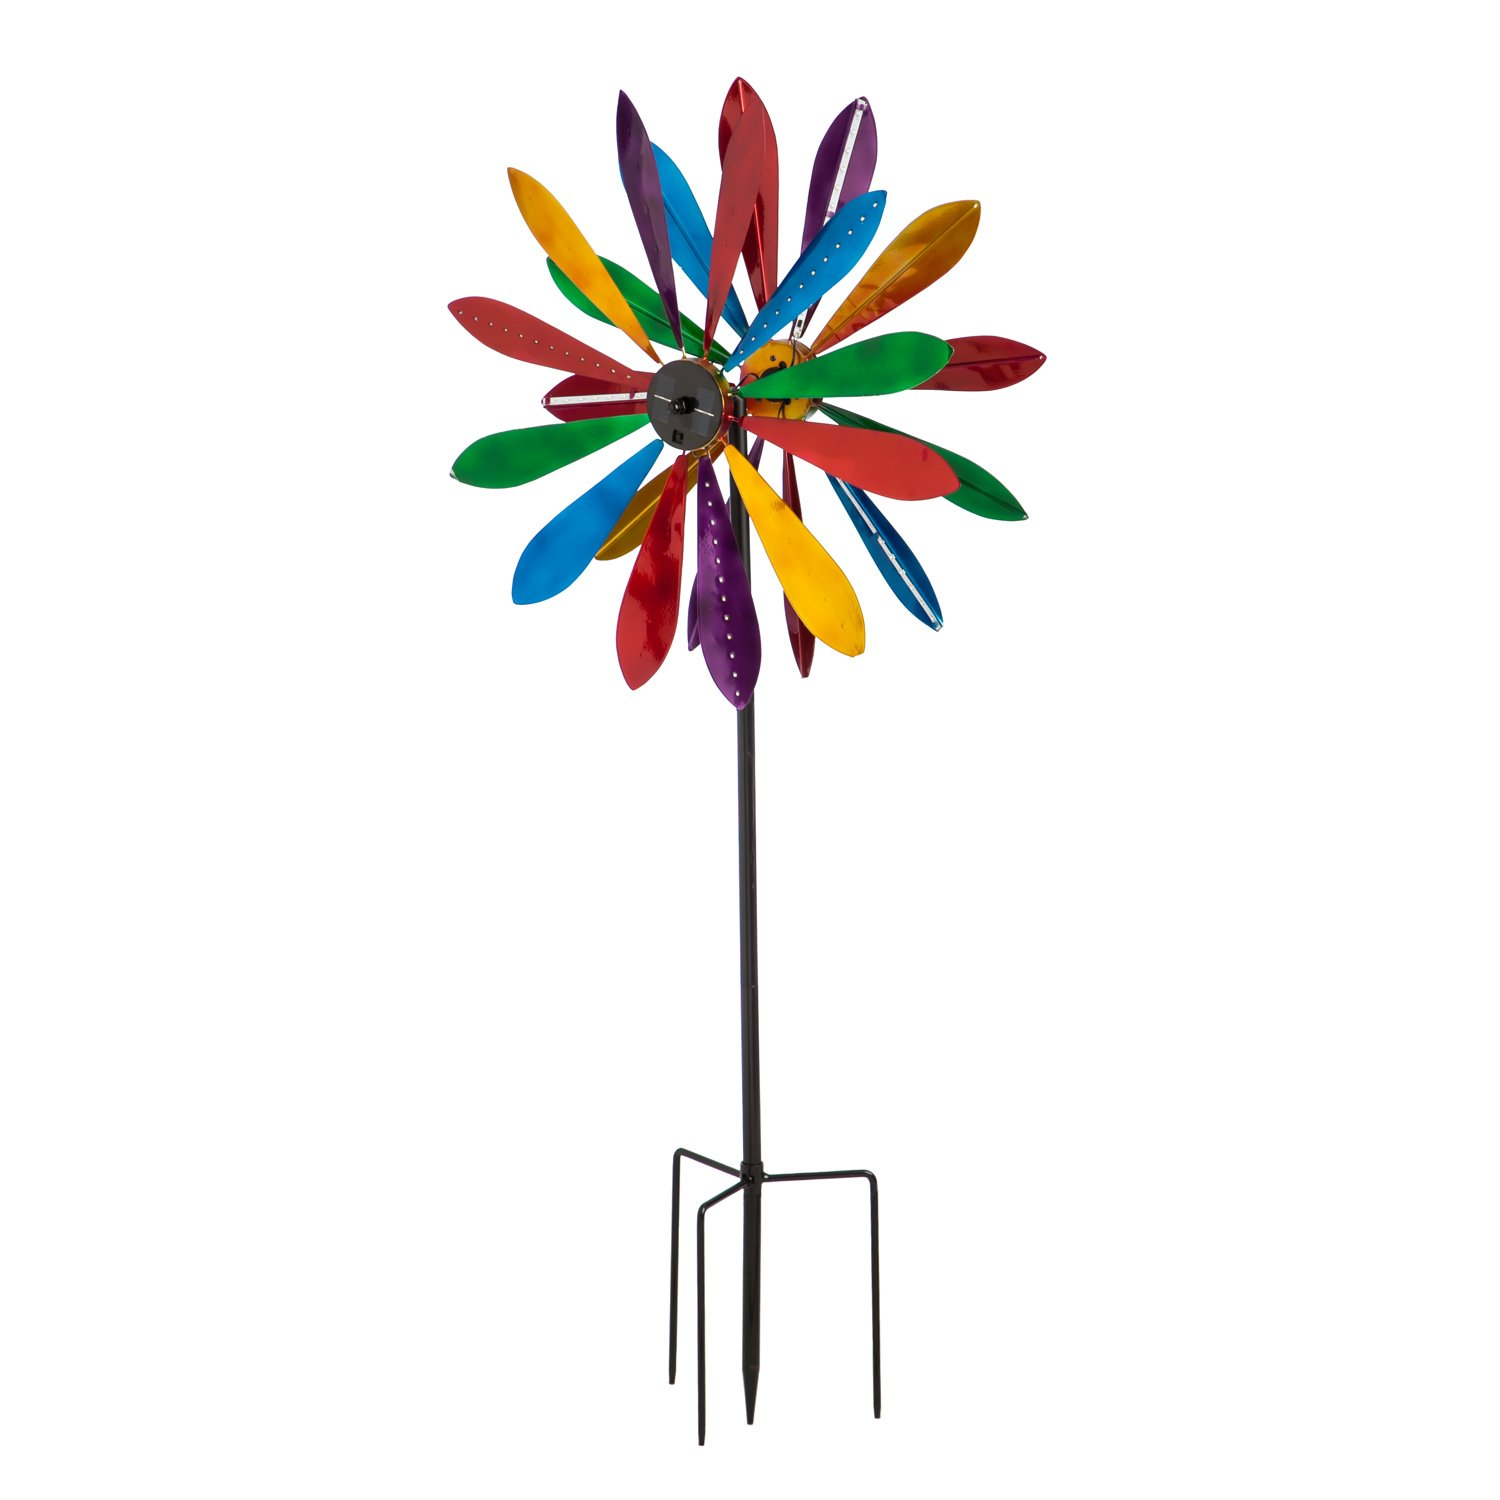 Evergreen 77-inch Color Explosion Chasing Lights Outdoor Safe Solar Kinetic Wind Spinner Garden Stake by Evergreen Garden